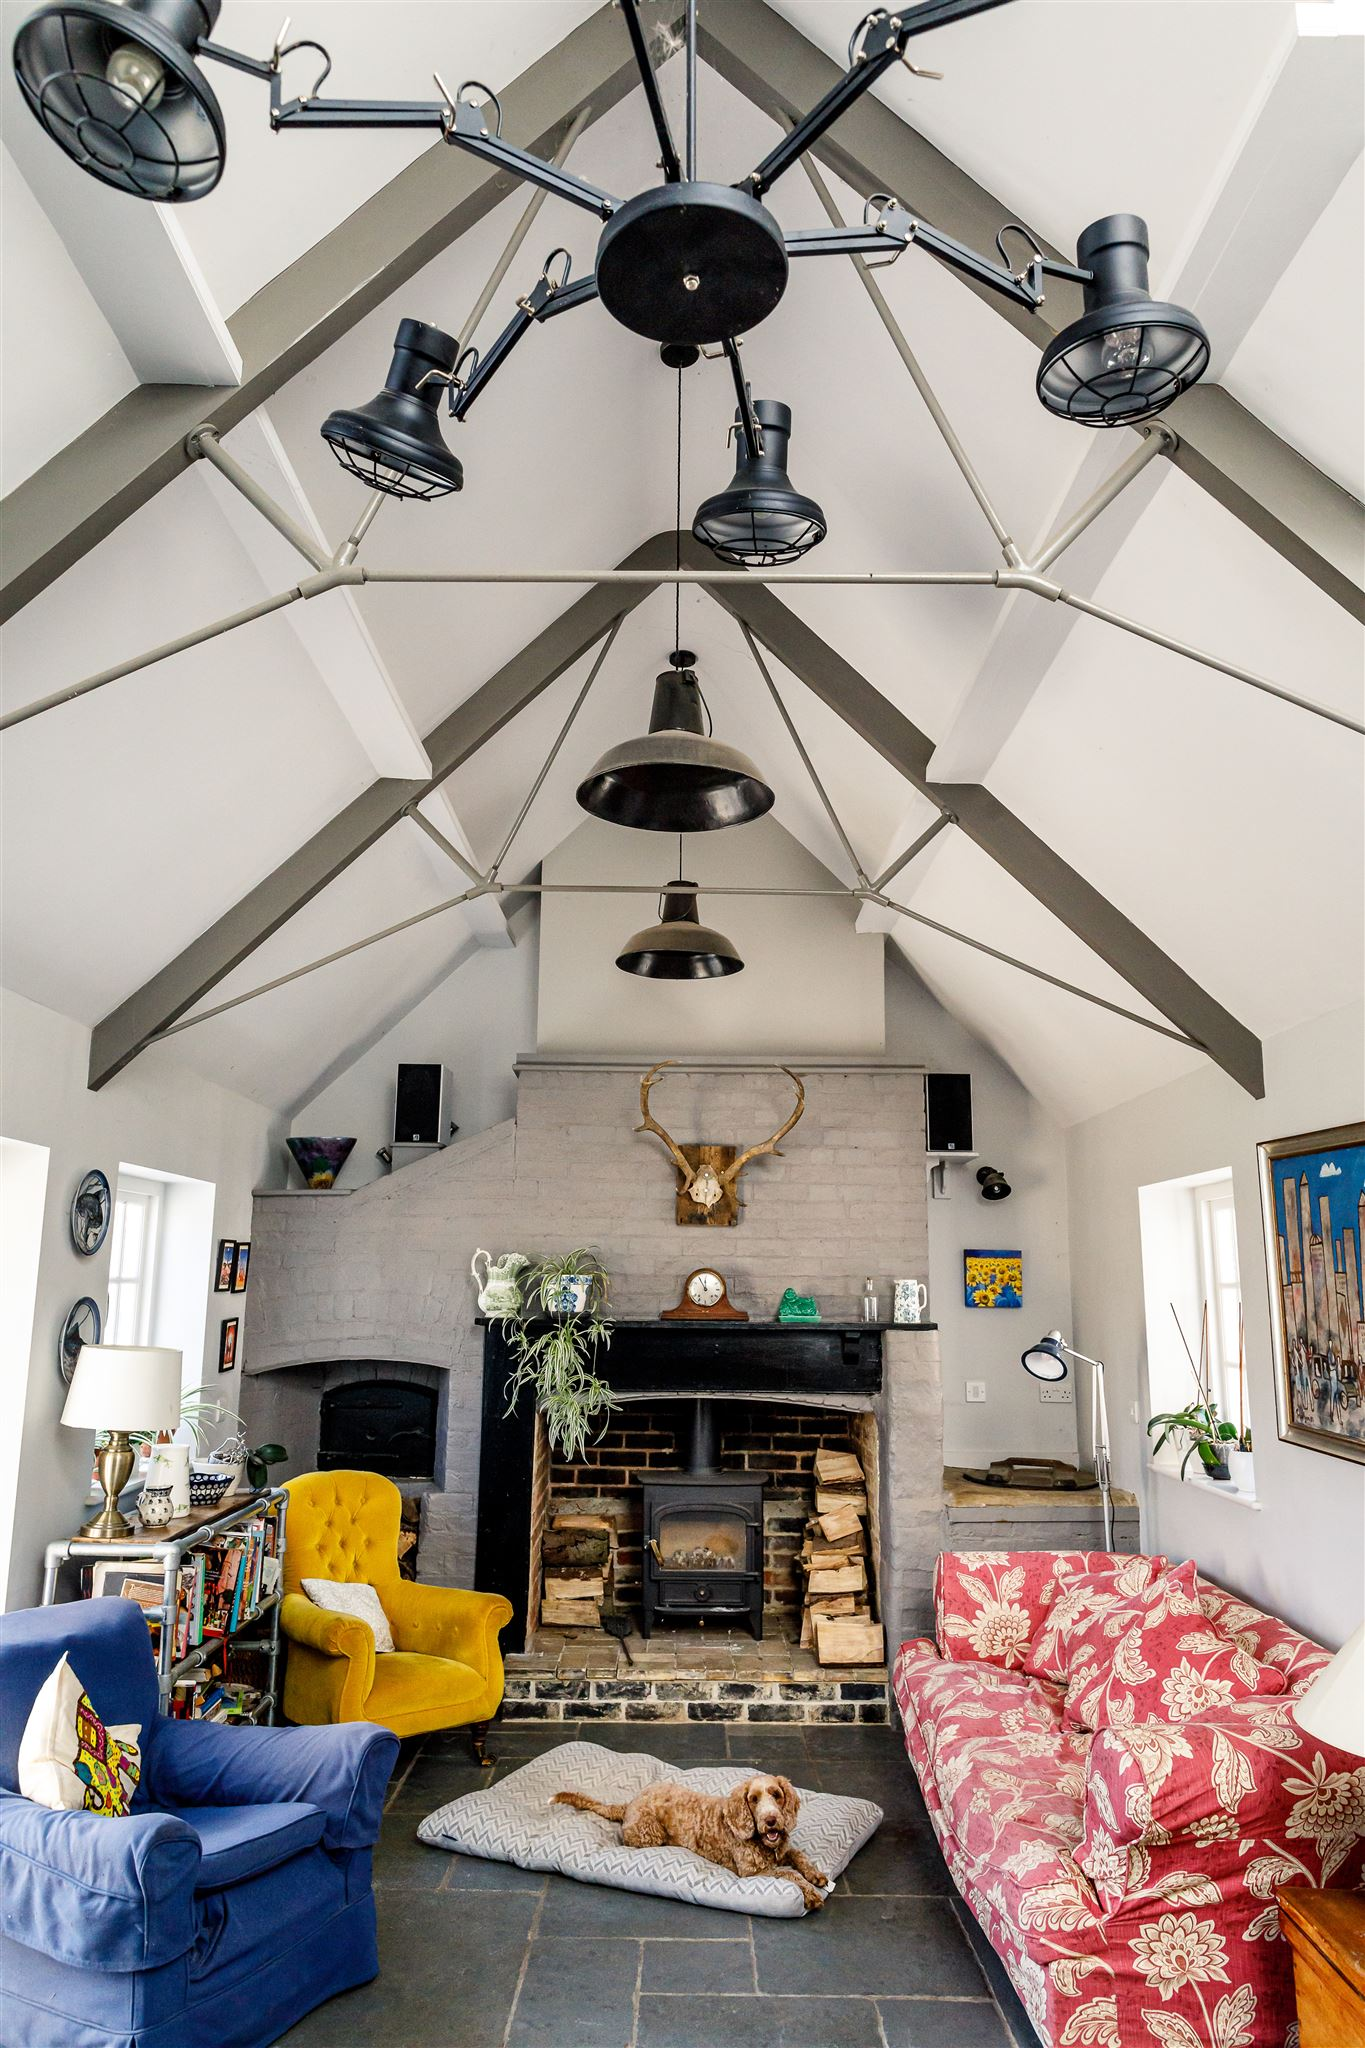 Architect for Renovation and extension of a Victorian farmhouse in rural Cambridgeshire